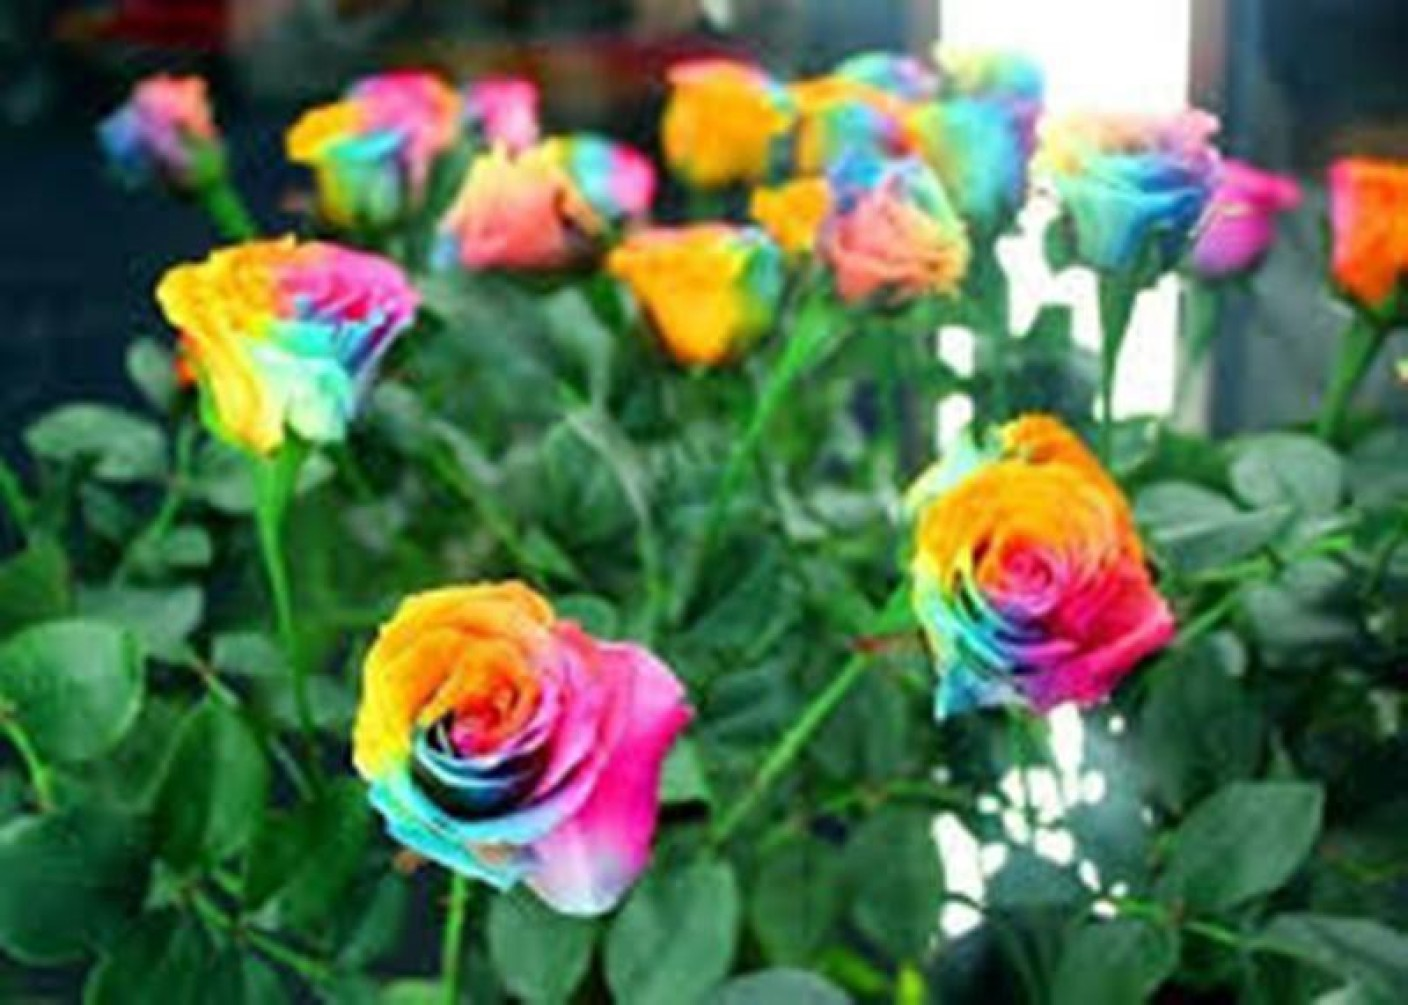 Rosemerc rose seed price in india buy rosemerc rose seed for Where can i buy rainbow roses in the uk